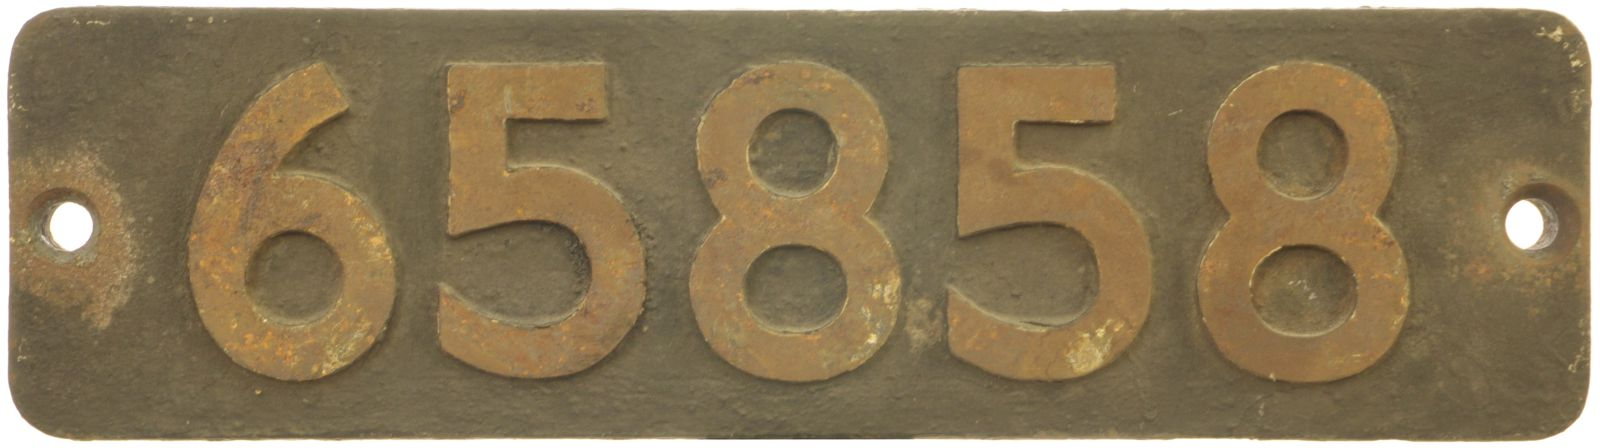 Lot 26 - Railway Locomotive Smokebox Numberplates, 65858: A smokebox numberplate, 65858, from a North Eastern